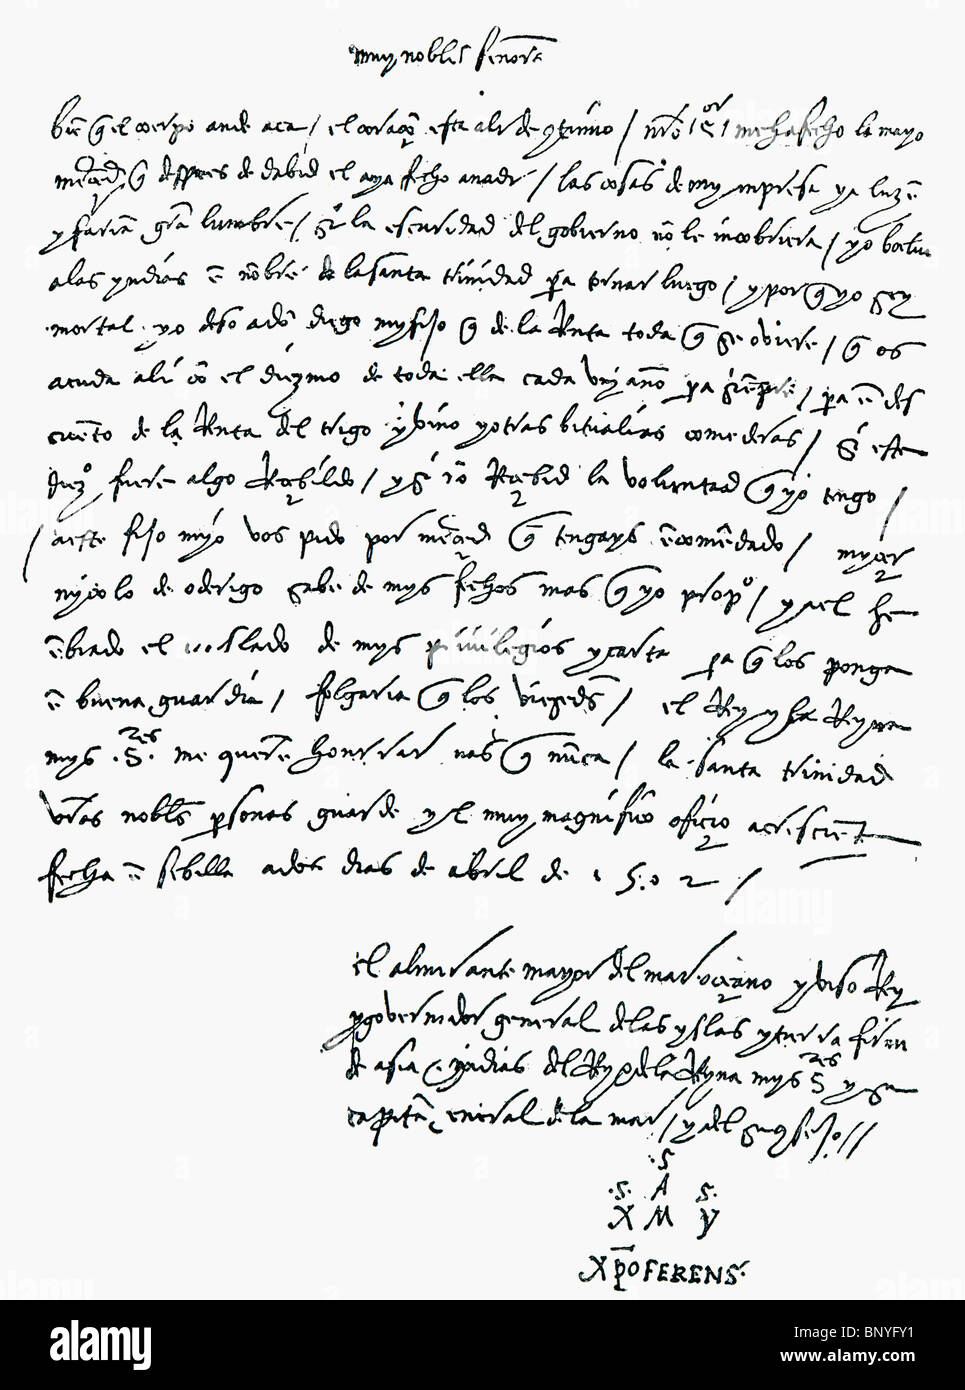 Facsimile of the letter from Christopher Columbus to the Bank of St. George, April 2, 1502. - Stock Image